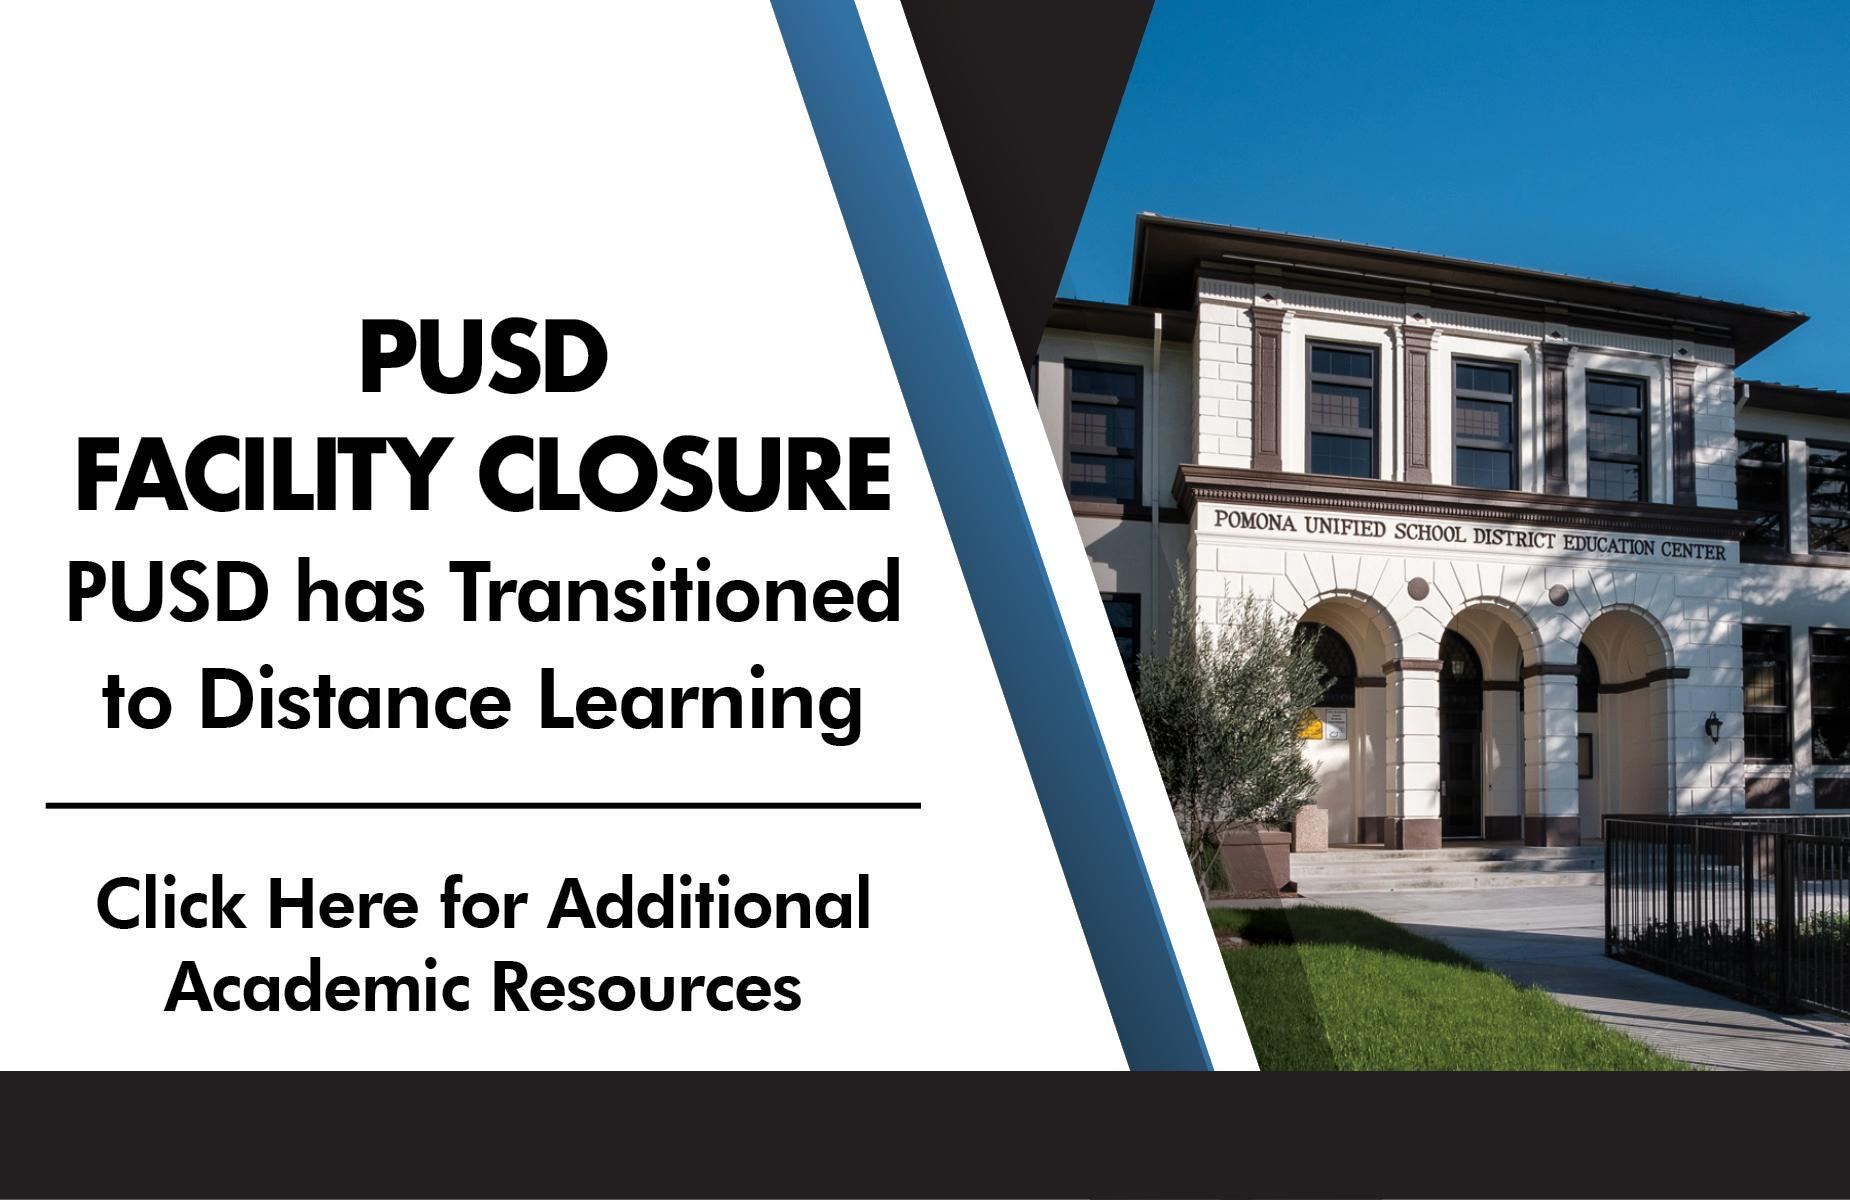 PUSD Closure visit https://sites.google.com/apps.pusd.org/pusd-closure-online-resources/home?fbclid=IwAR3Tz5kq0zX8-kuxZA2PYKYcY1lcVW0_feGt5f-B7Lit5pGBF14ICt3a4wA